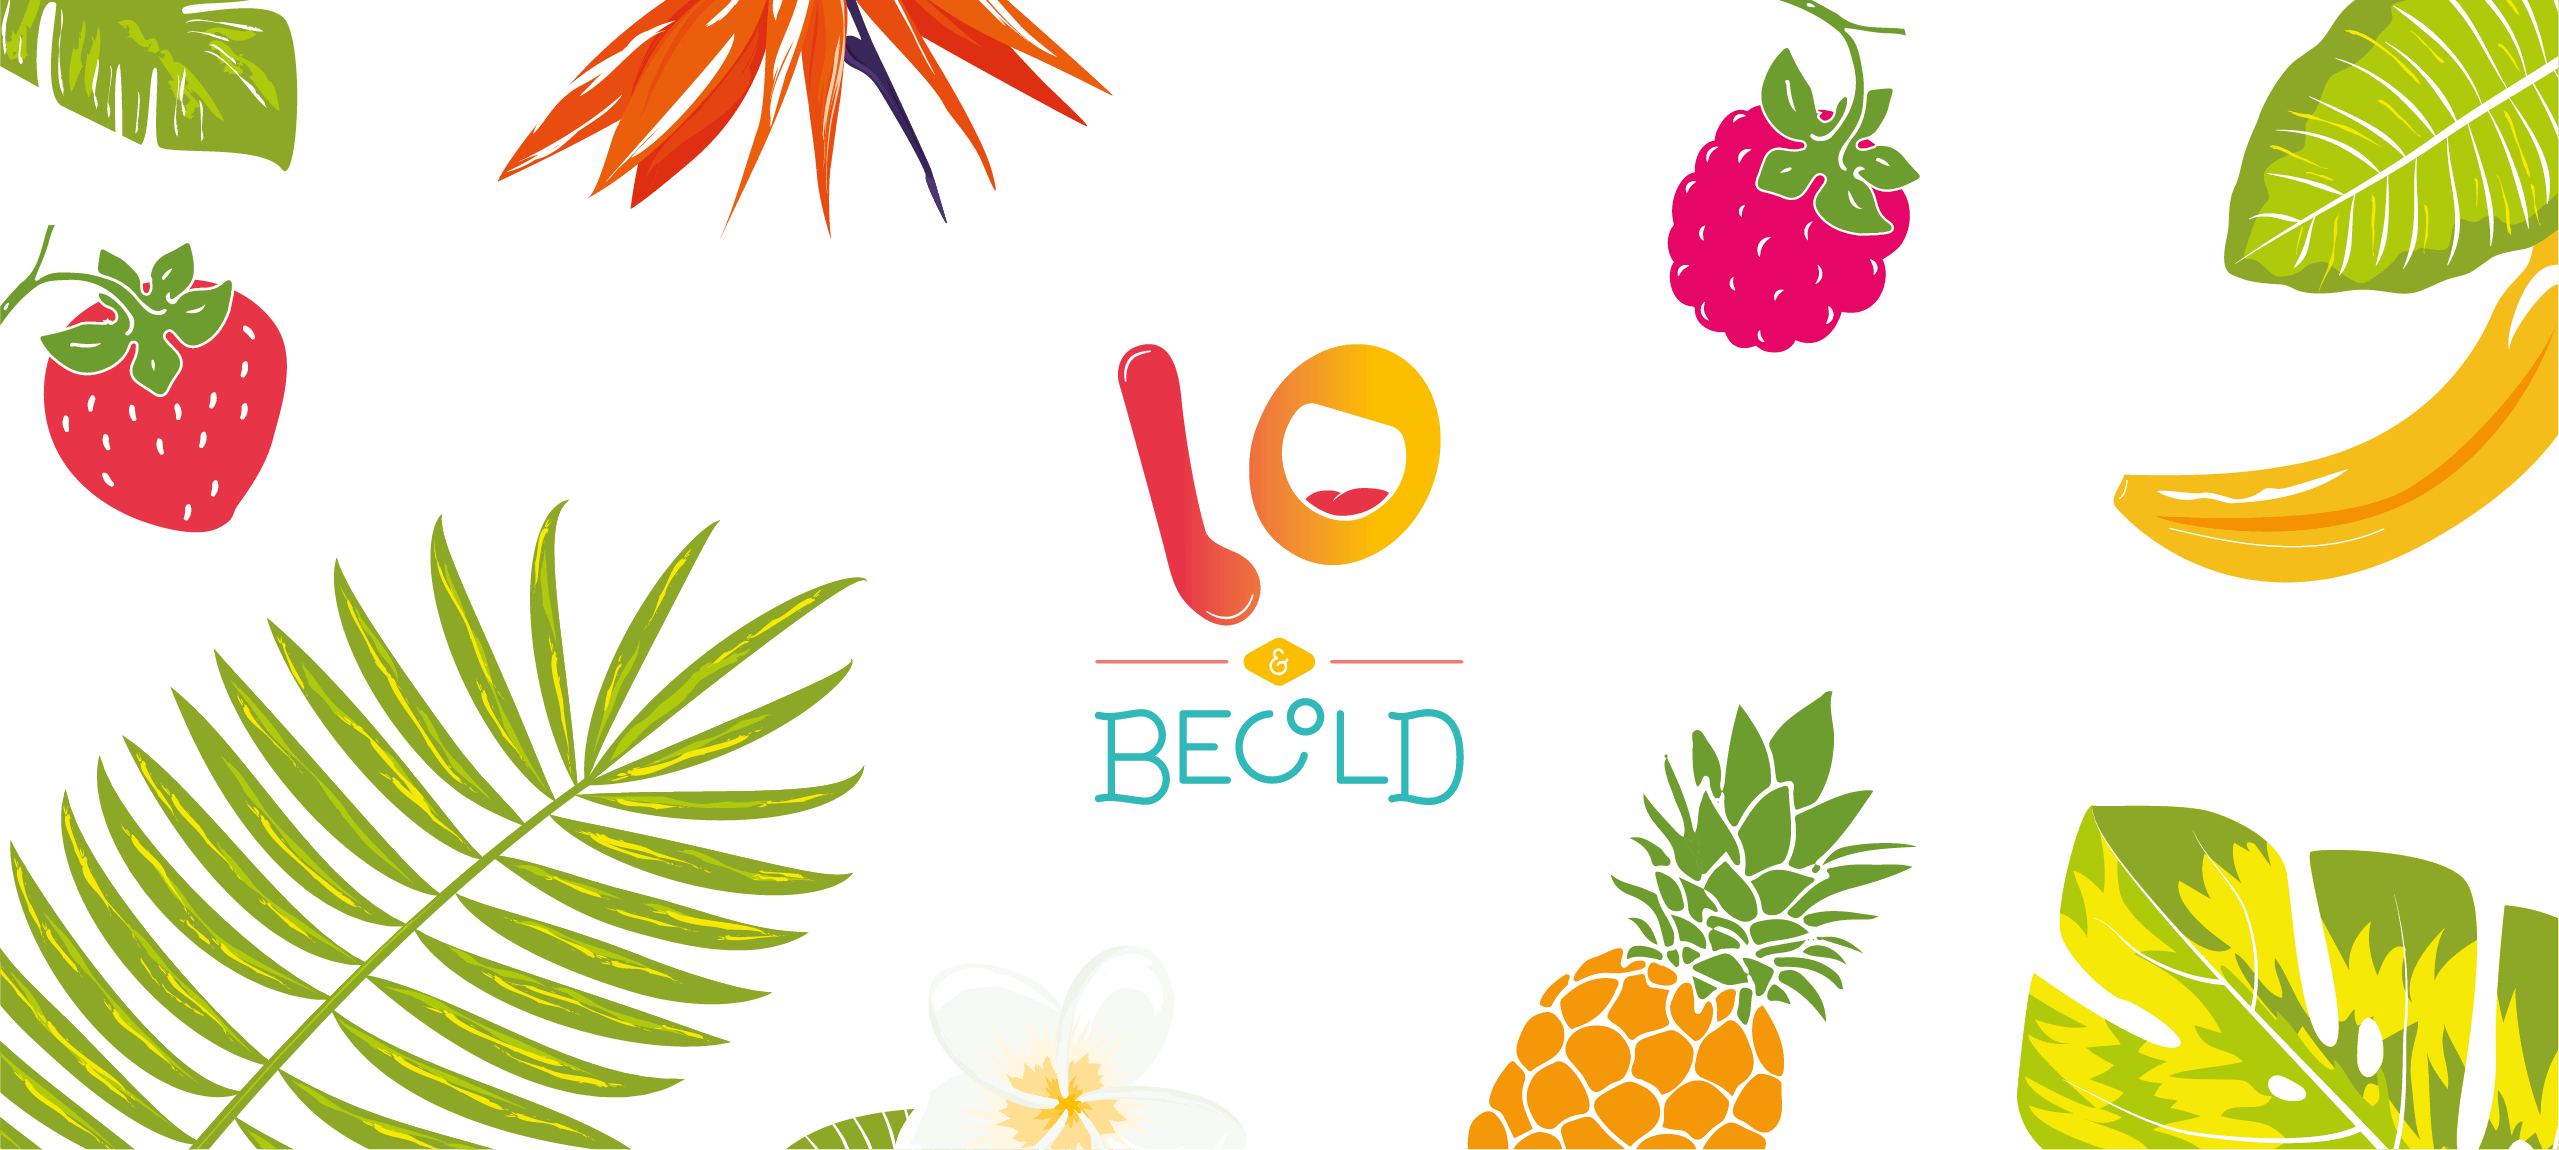 Lo & Becold Brand Assets